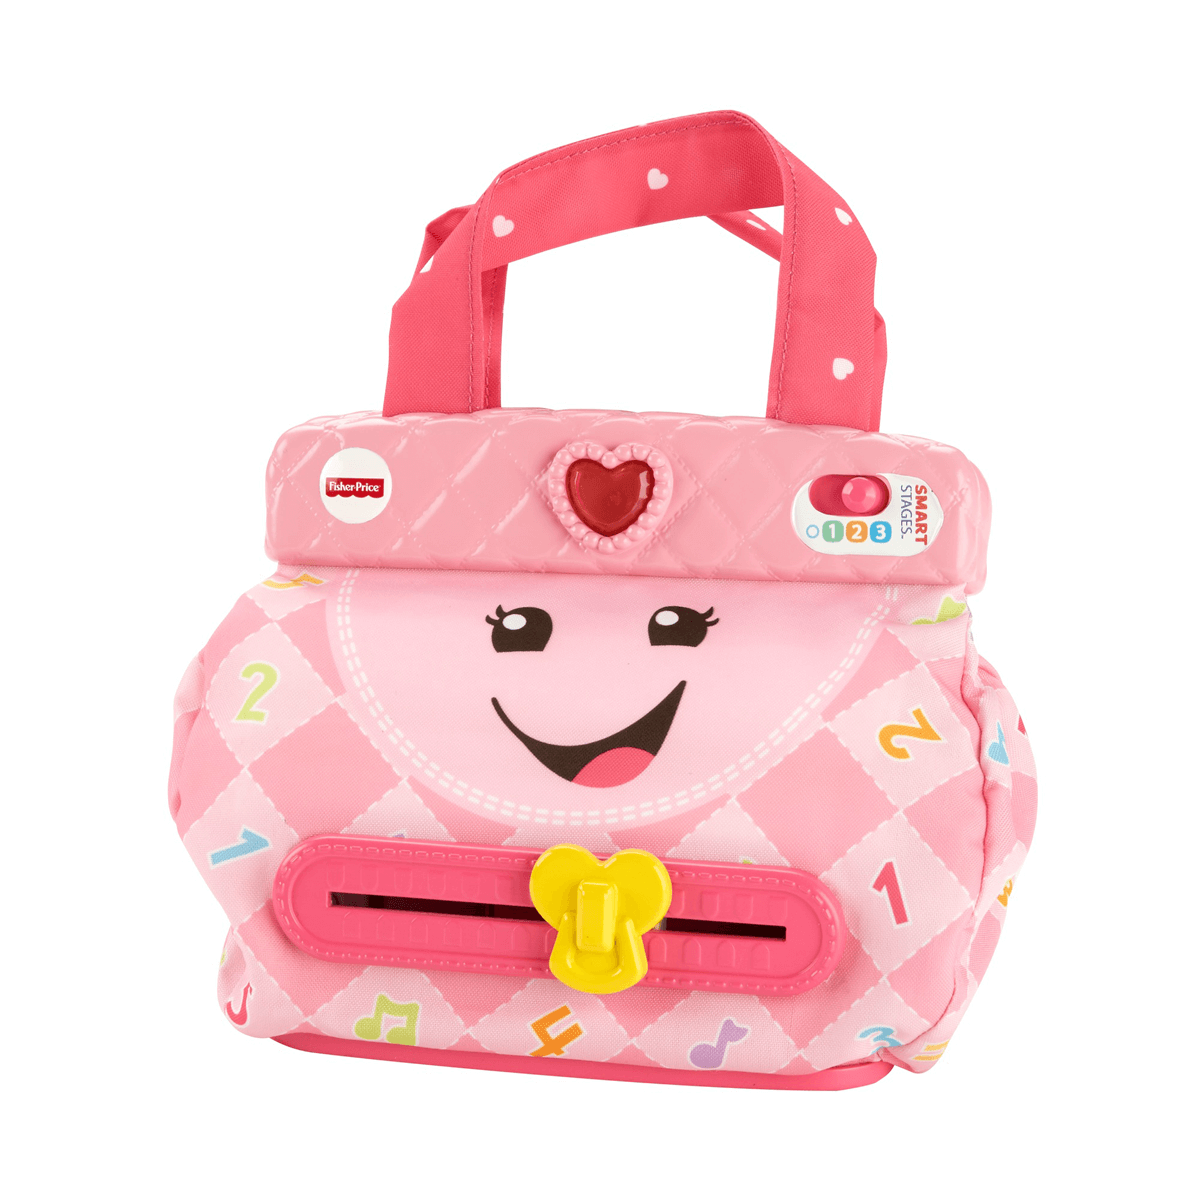 Fisher-Price Laugh & Learn My Smart Purse from Early Learning Center